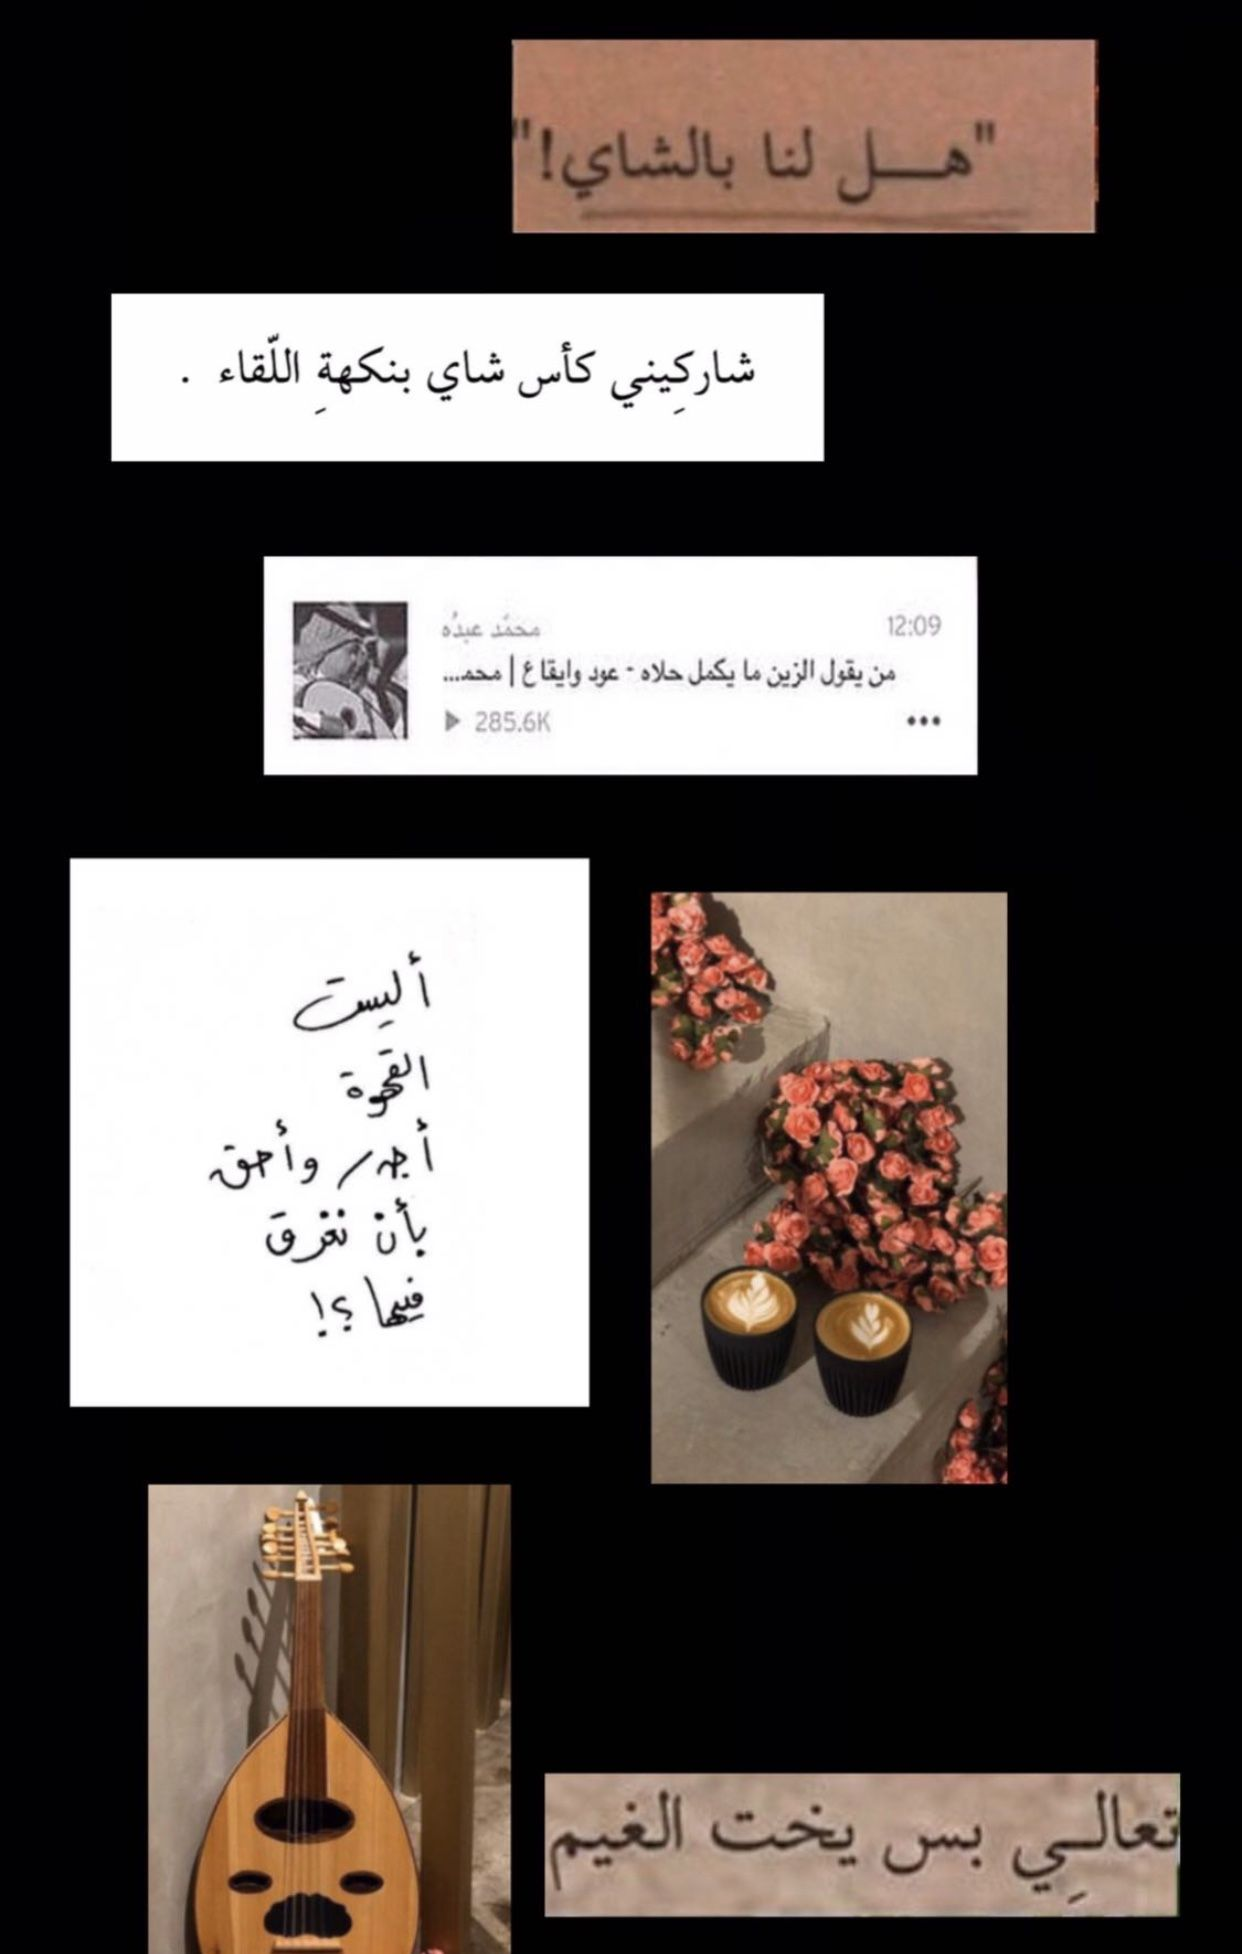 Pin By ـالحـر بـيـه On Text Iphone Wallpaper Quotes Love Love Quotes Wallpaper Arabic Quotes